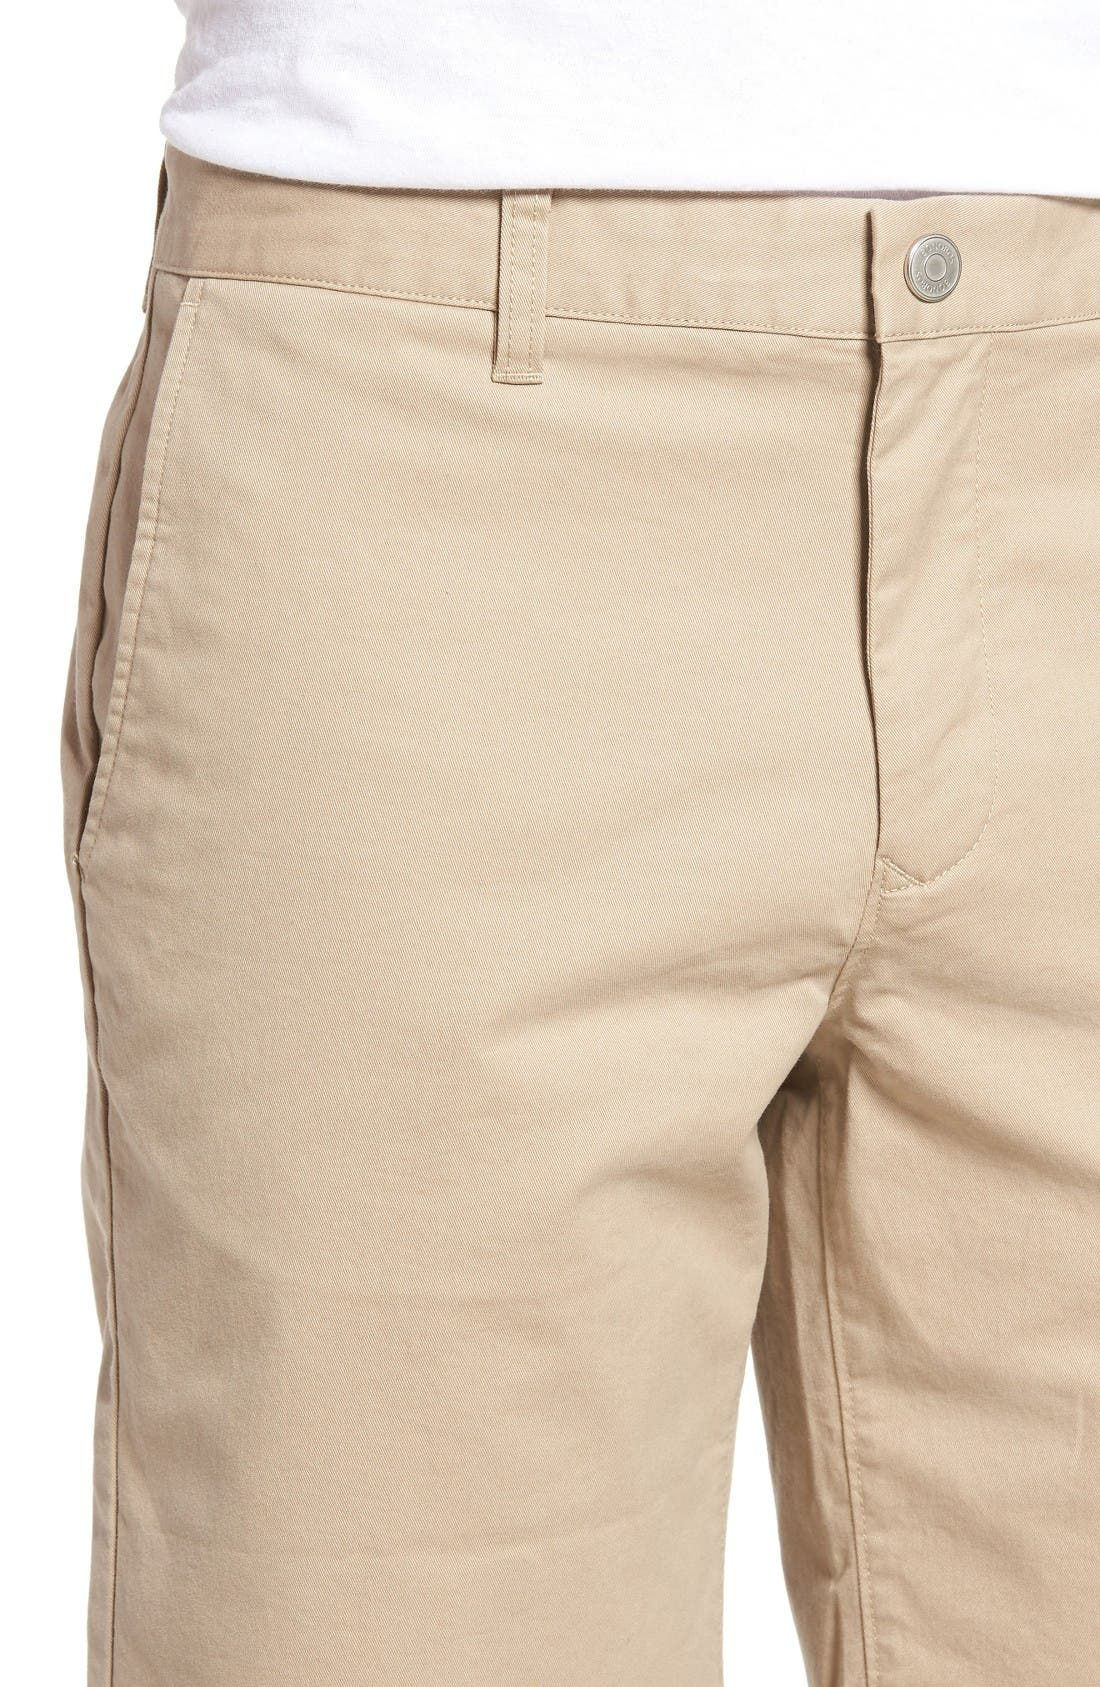 Stretch Washed Chino 9-Inch Shorts,                             Alternate thumbnail 4, color,                             True Khaki